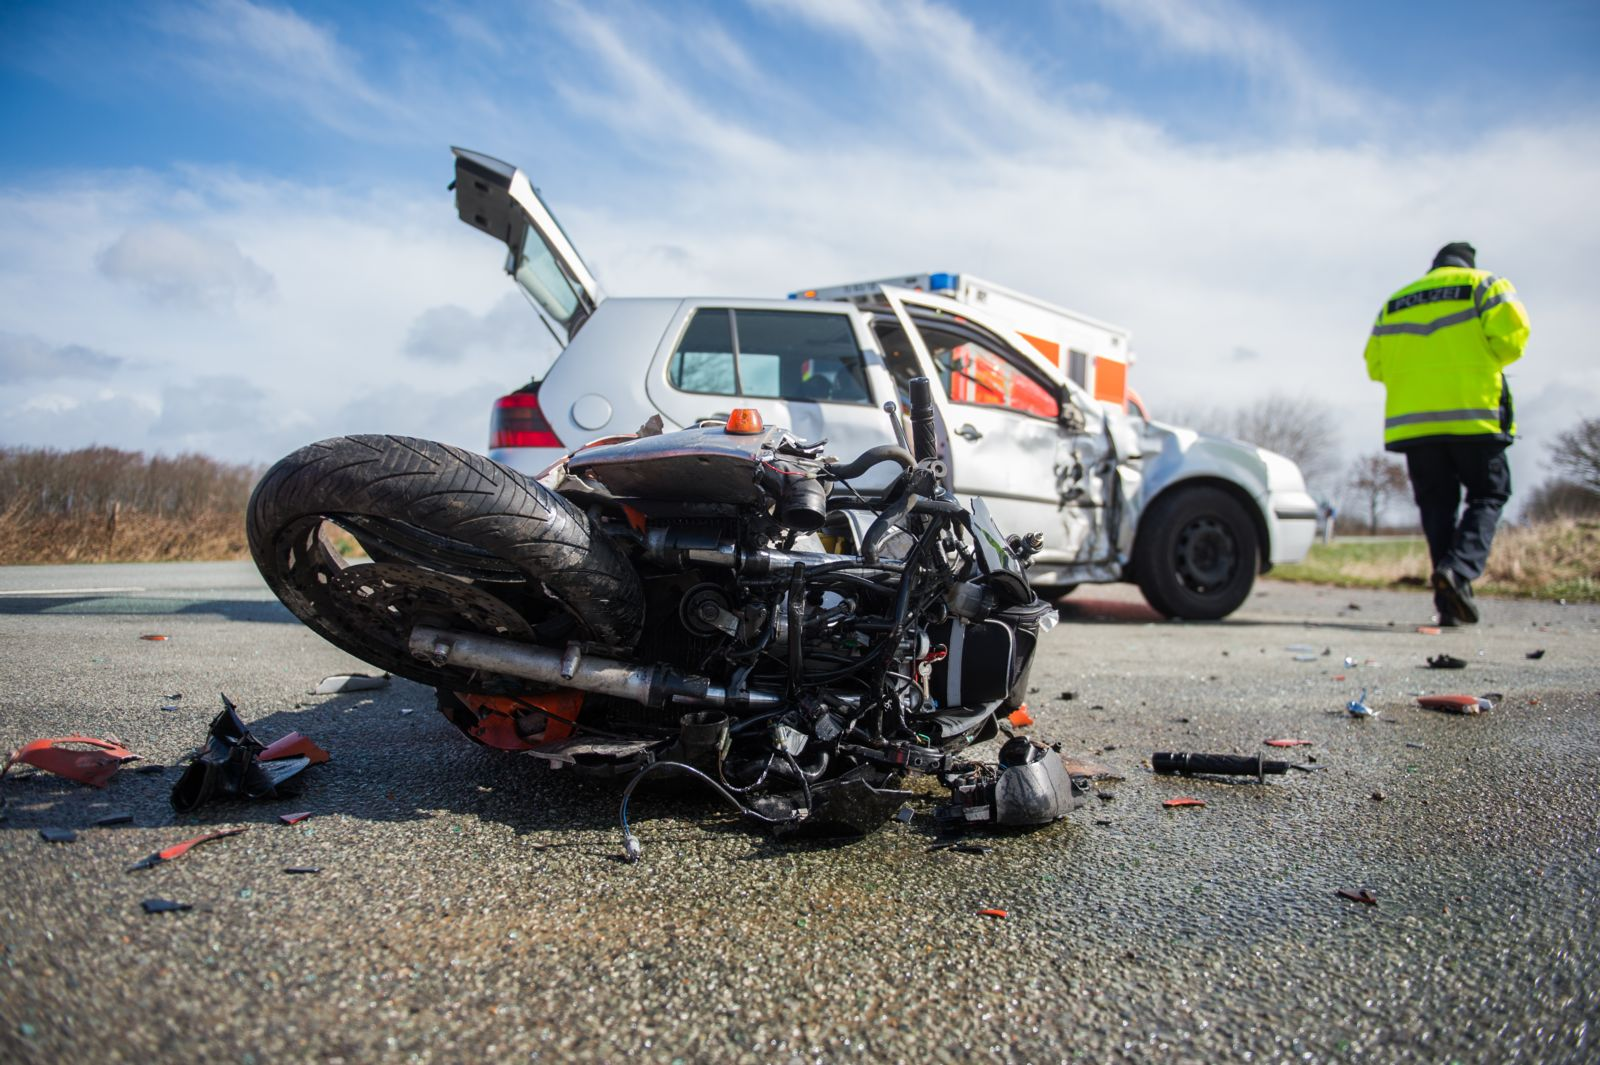 Covington Motorcycle Accident Lawyer Flattmann Law